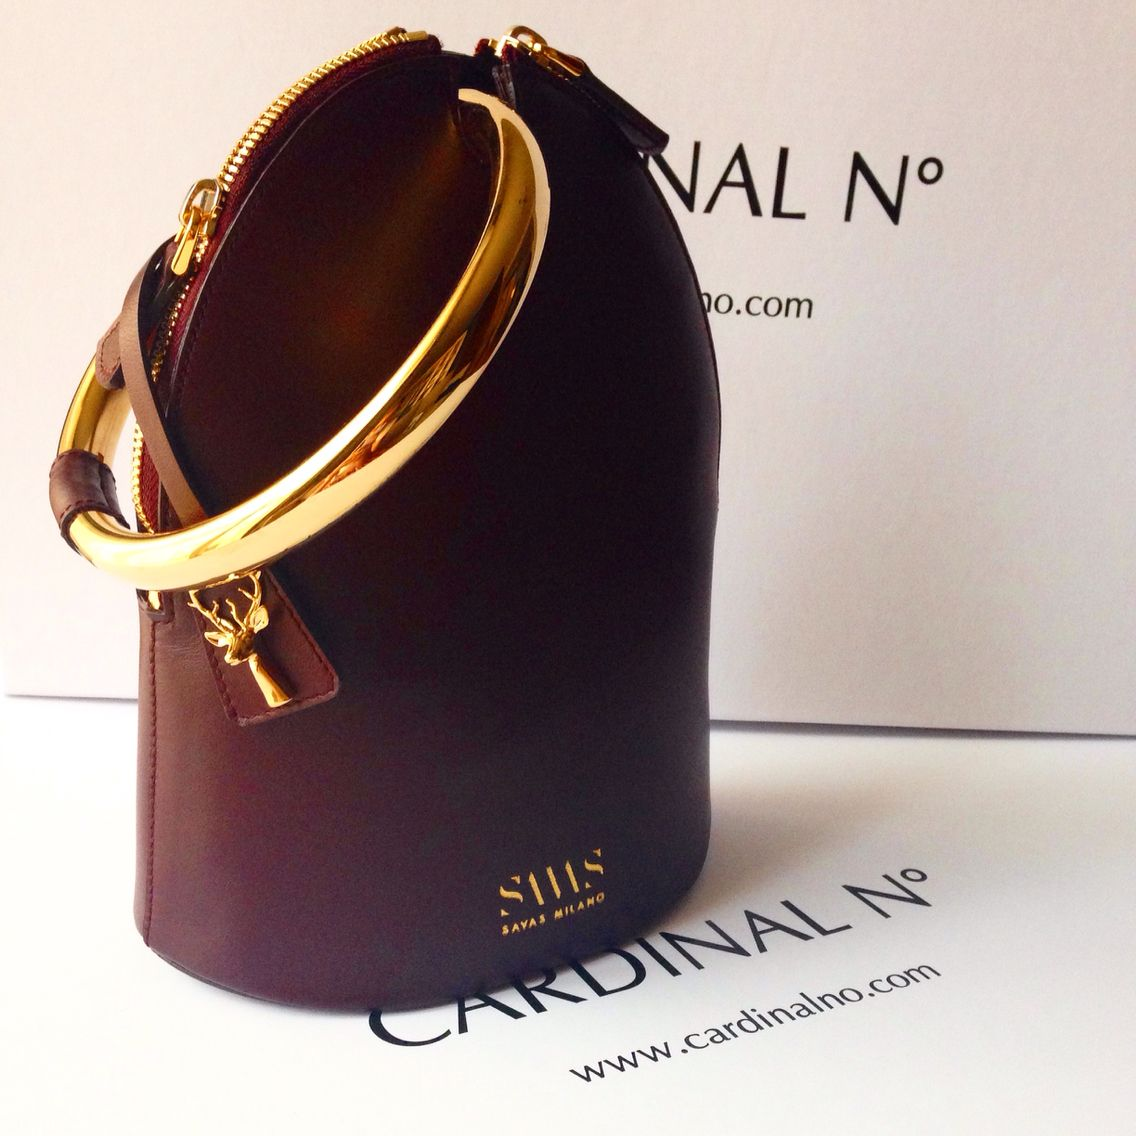 219b9a4fd21 The New queen of bags - Ring bag by Savas Milano #burgundy #fashion #bag